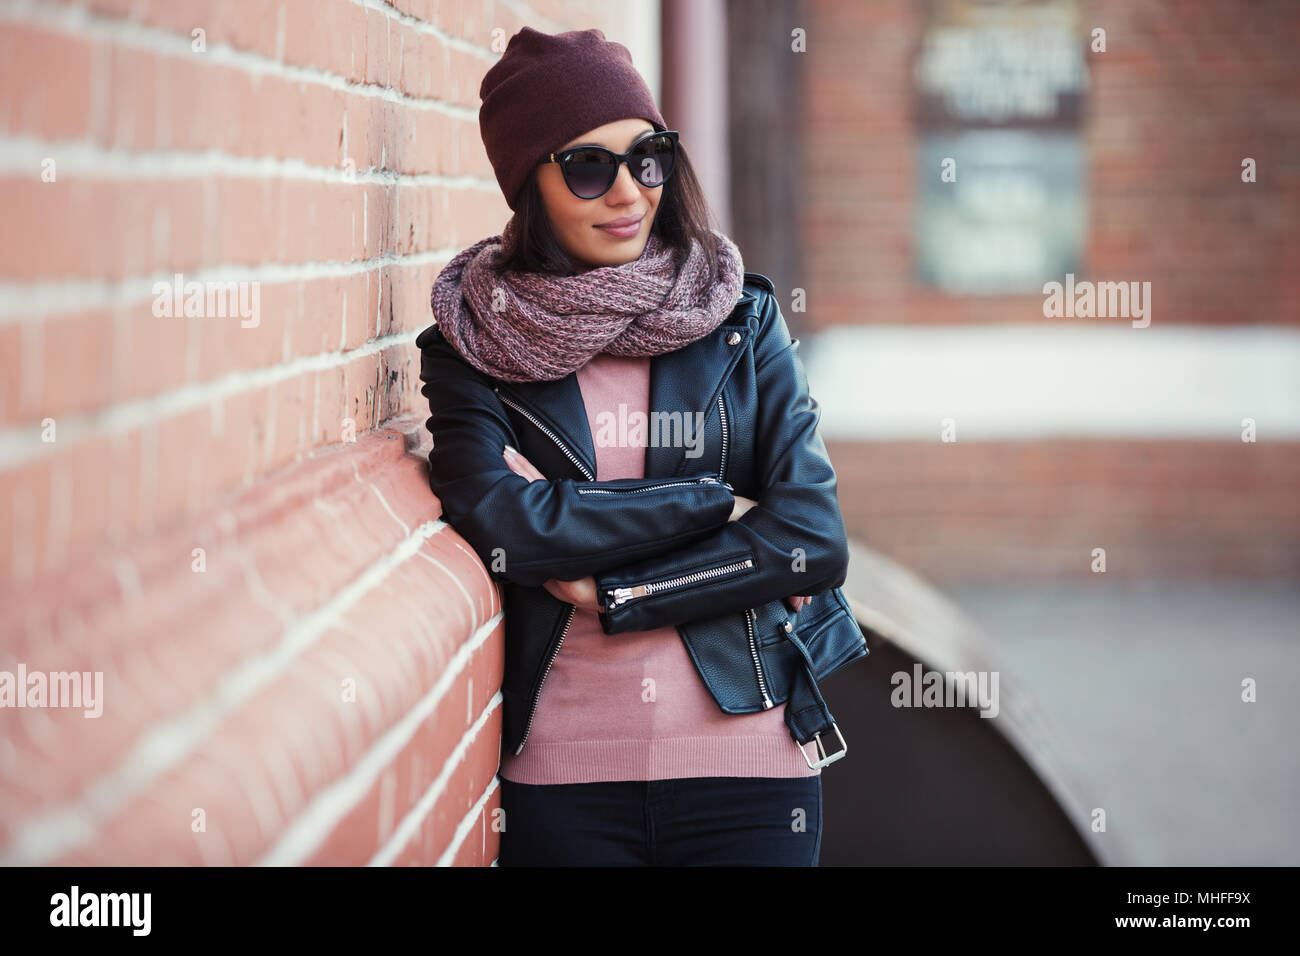 Young Fashion Woman Wearing Sunglasses Scarf And Beanie Leaning On